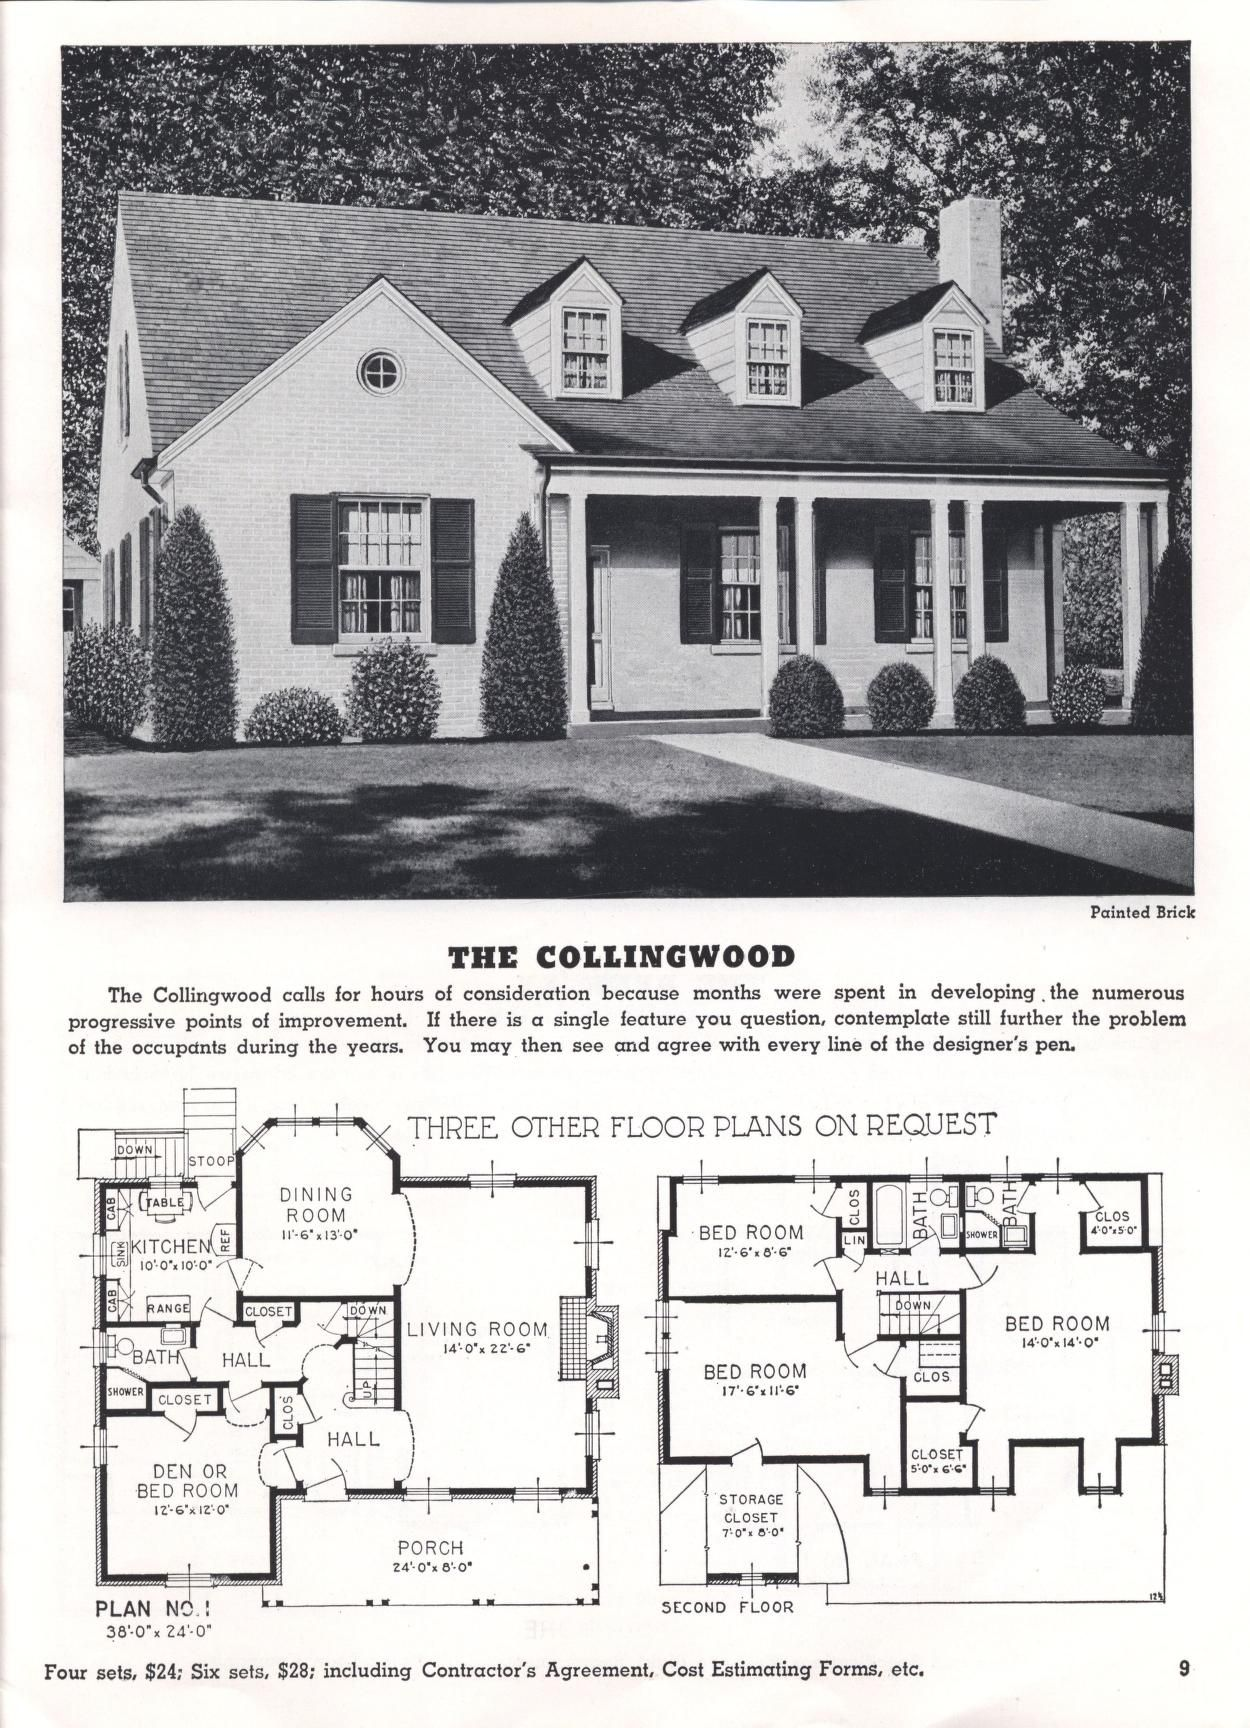 Homes Of Today And Tomorrow B 48 Standard Homes Co Free Download Borrow And Streaming Internet Archive Floor Plans House Plans Vintage Architecture